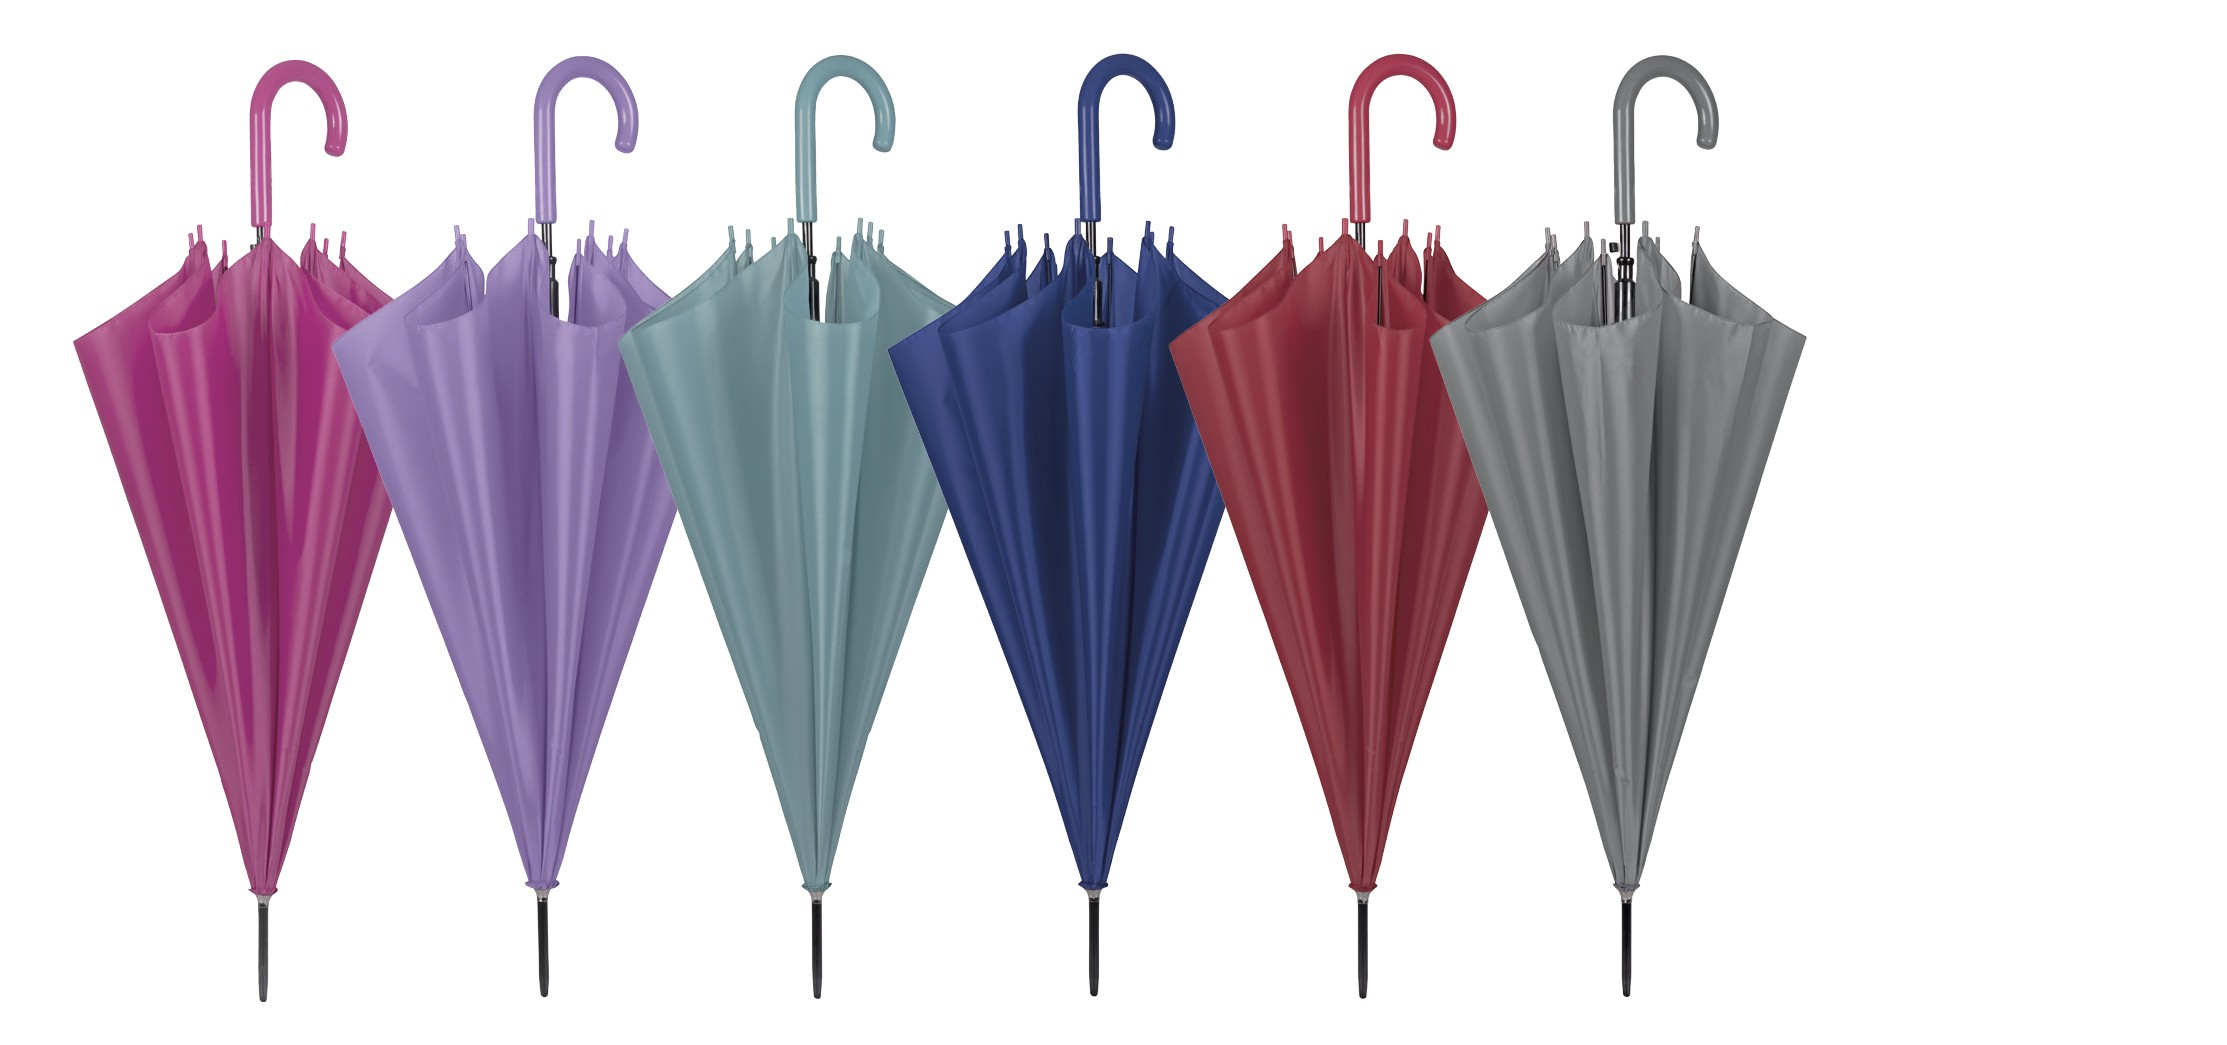 Walking stick umbrellas